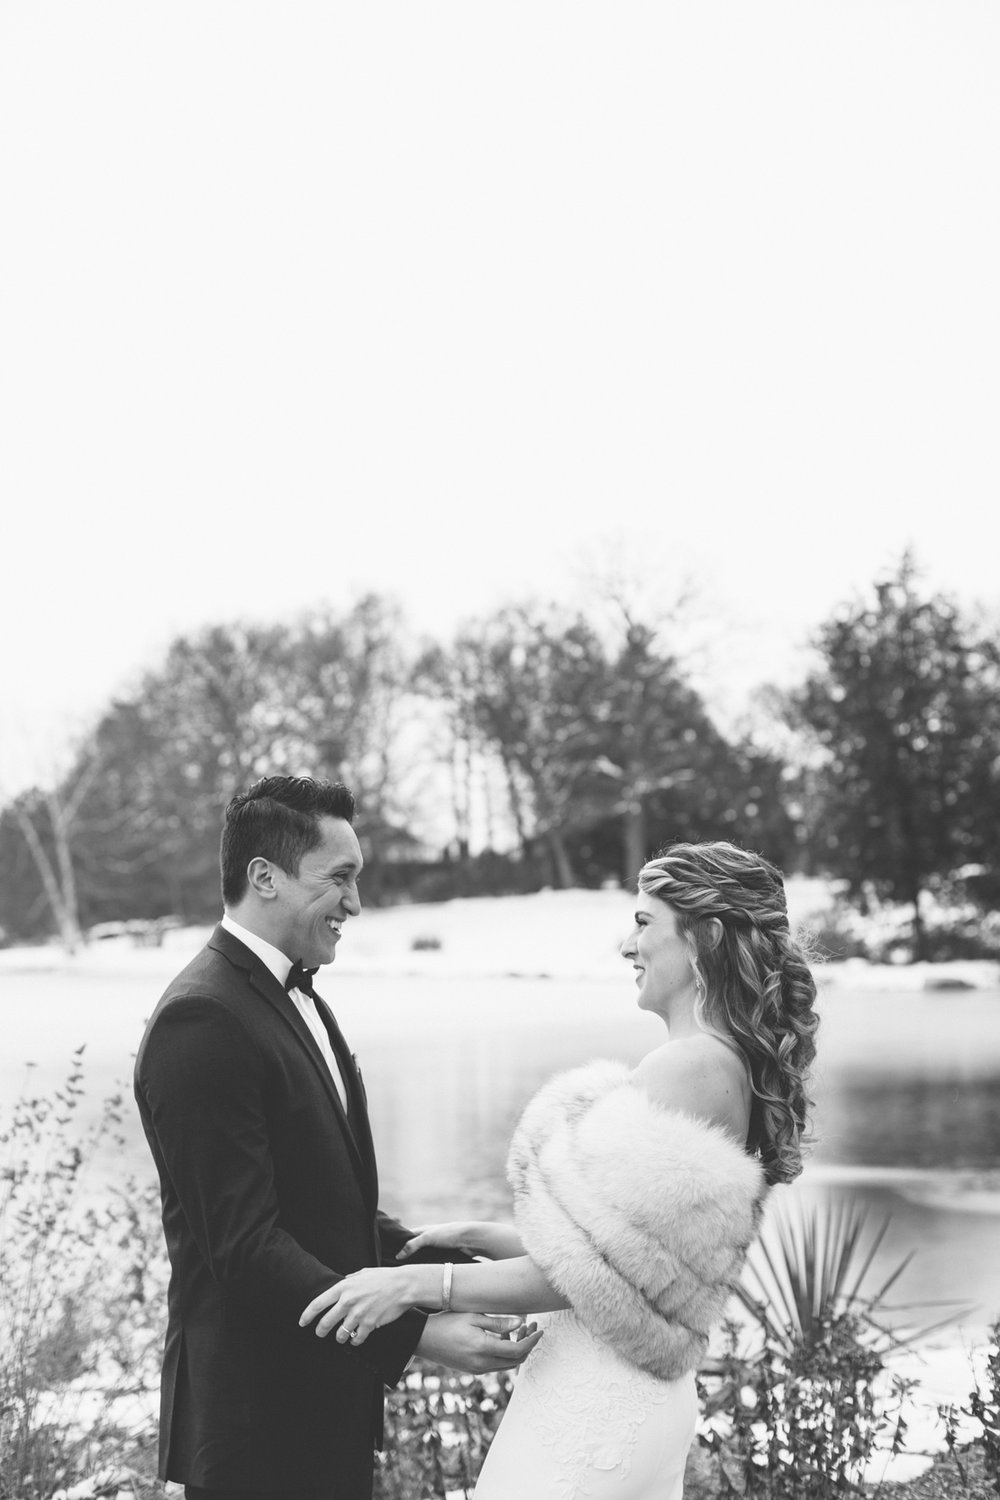 GrainandCompass_DanielChristineWedding_Blog-37.jpg